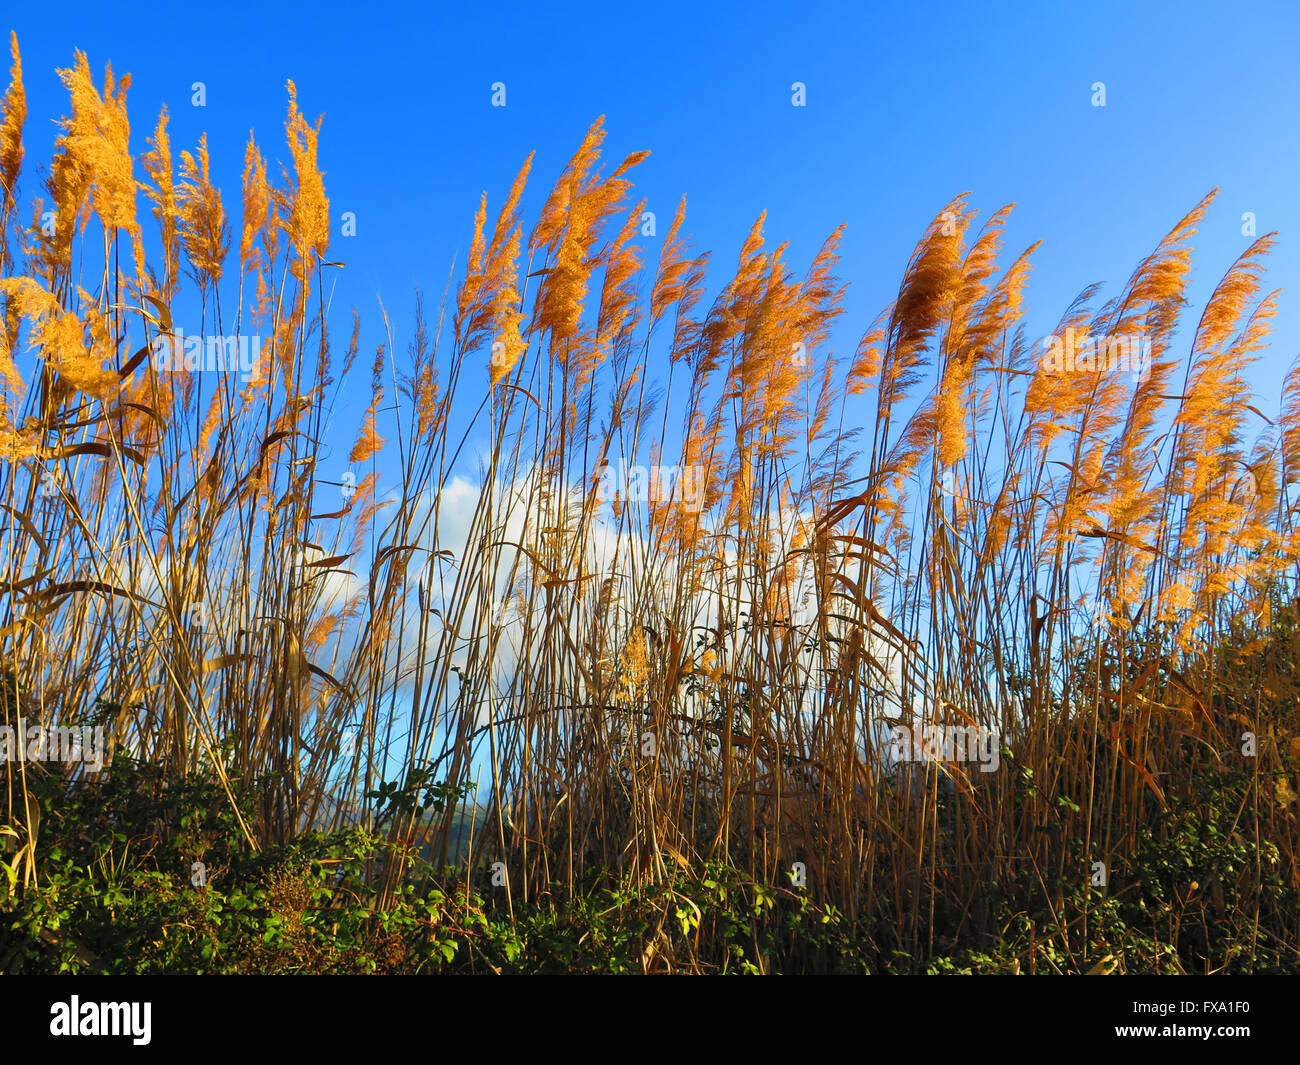 Seeding tall green bamboo grass closeup against blue sky - Stock Image